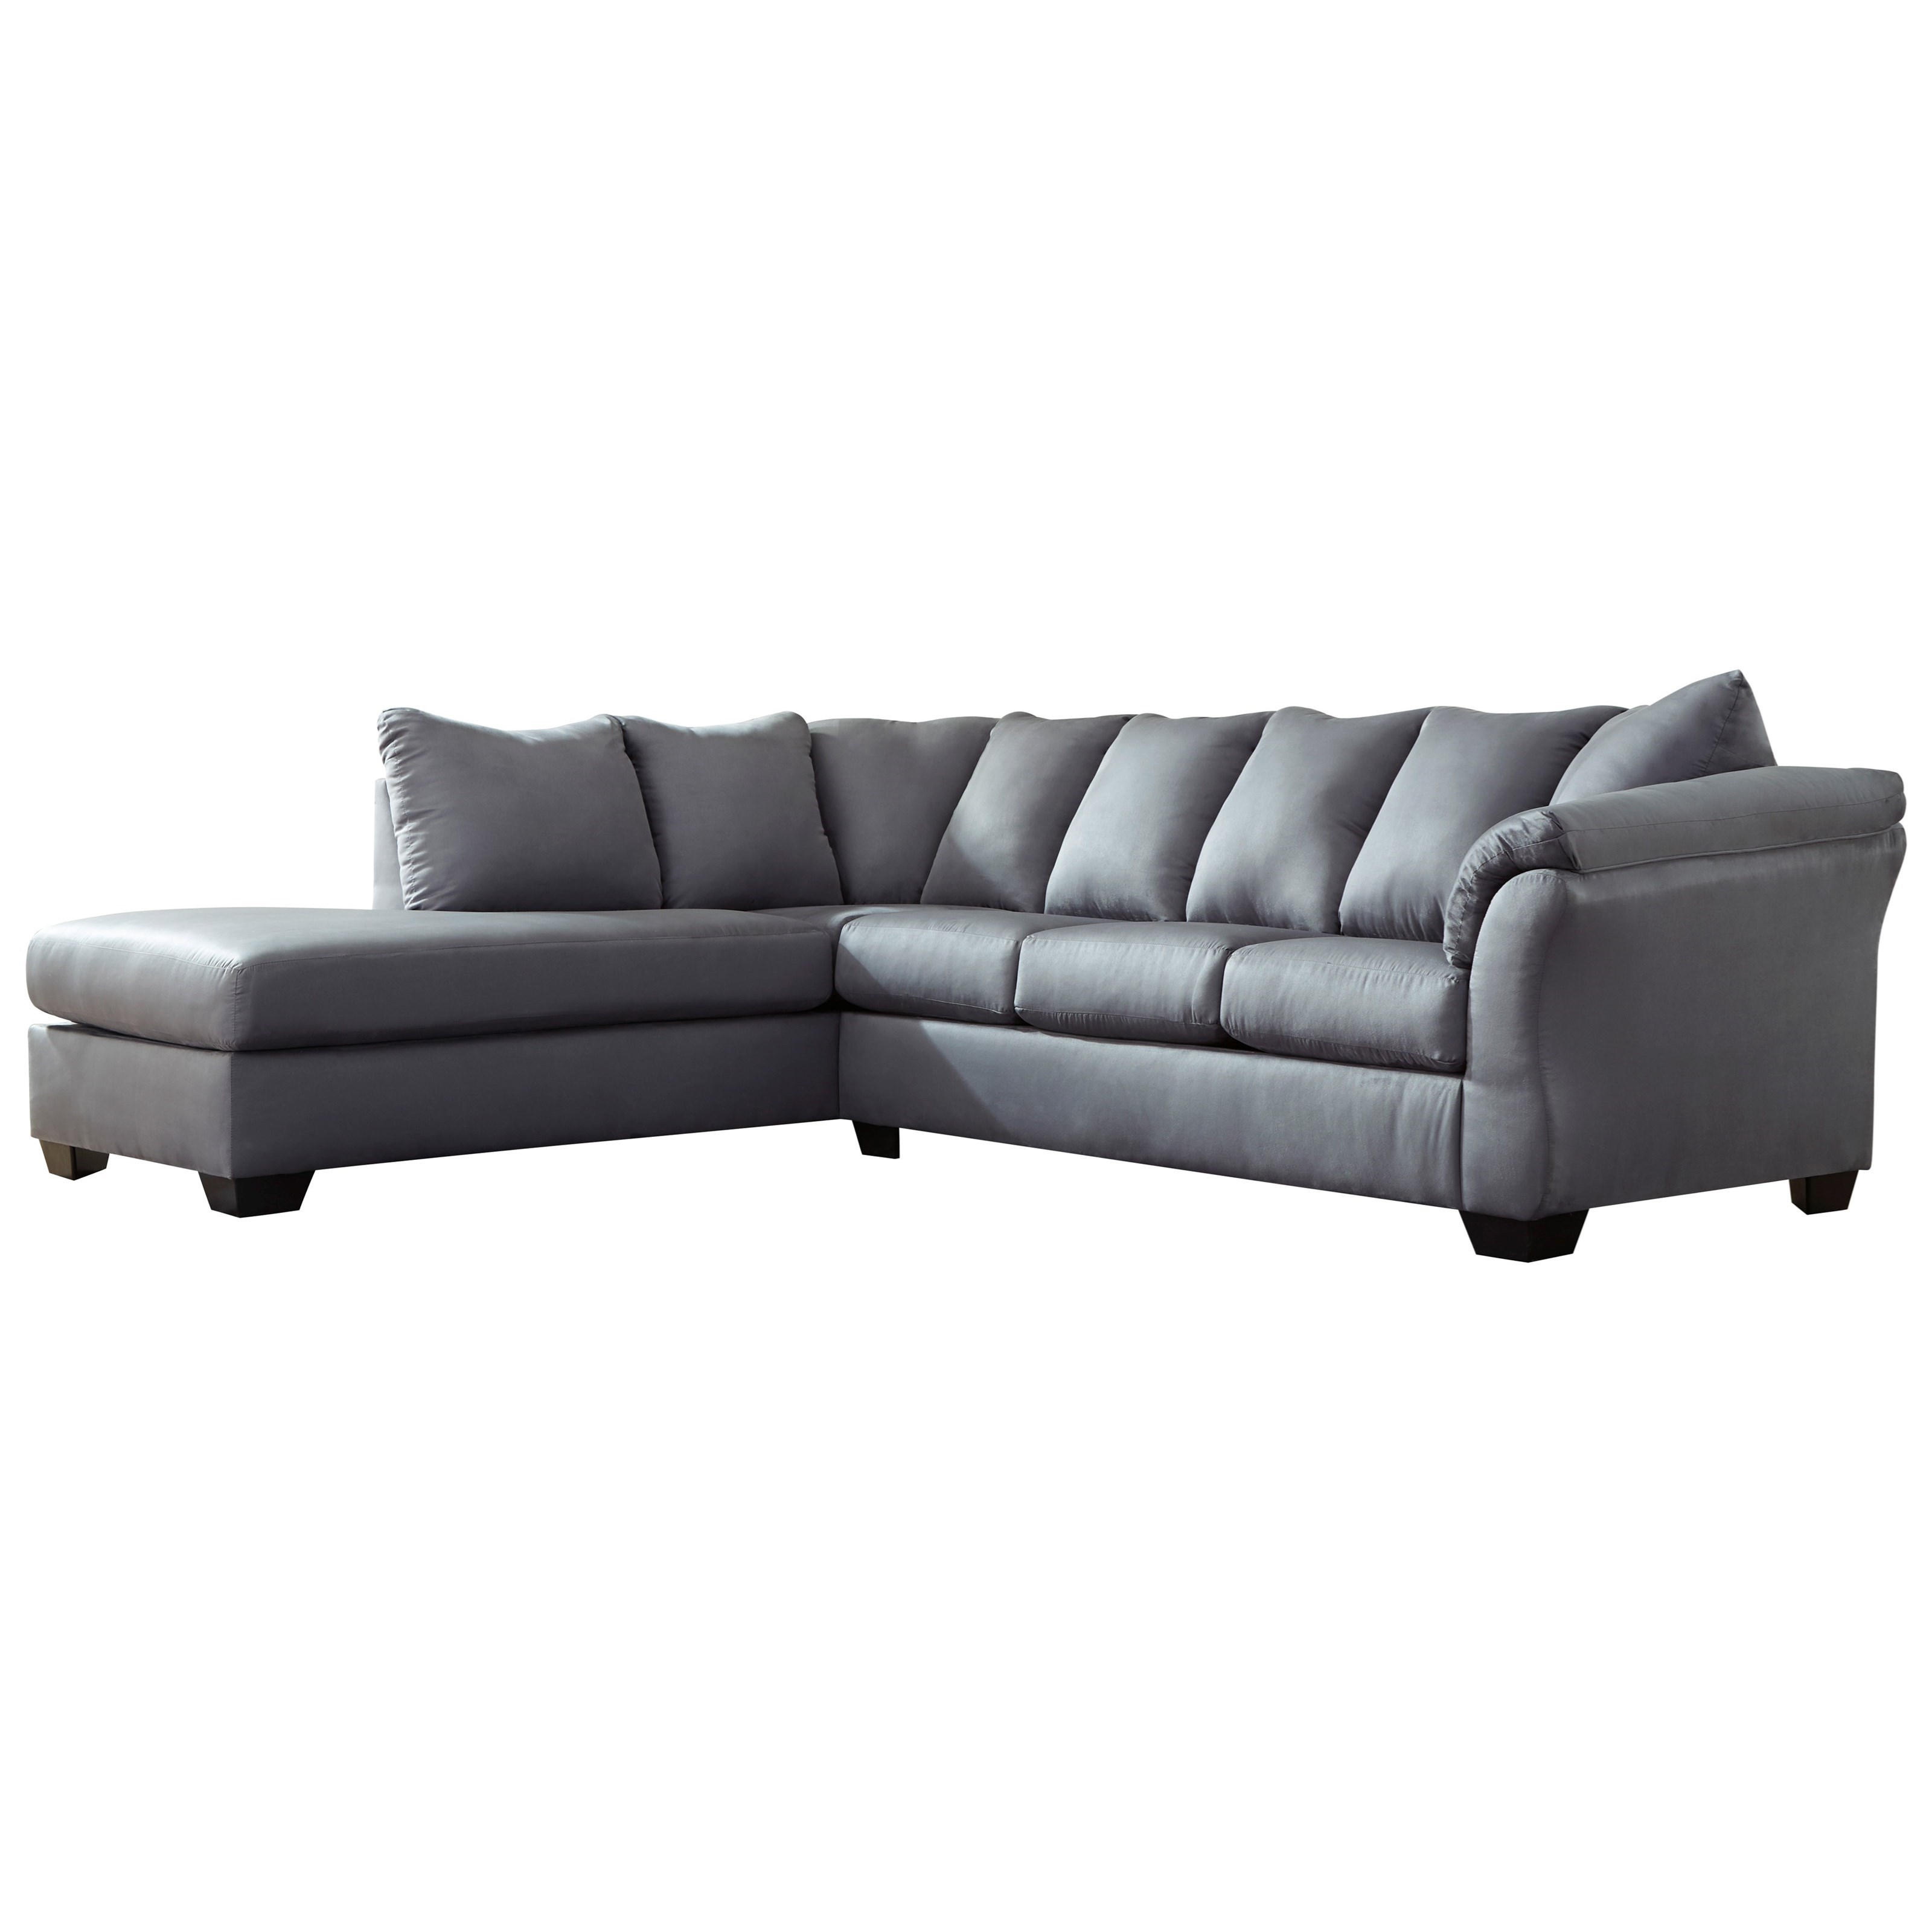 Darcy Steel 2 Piece Sectional Sofa With Chaise